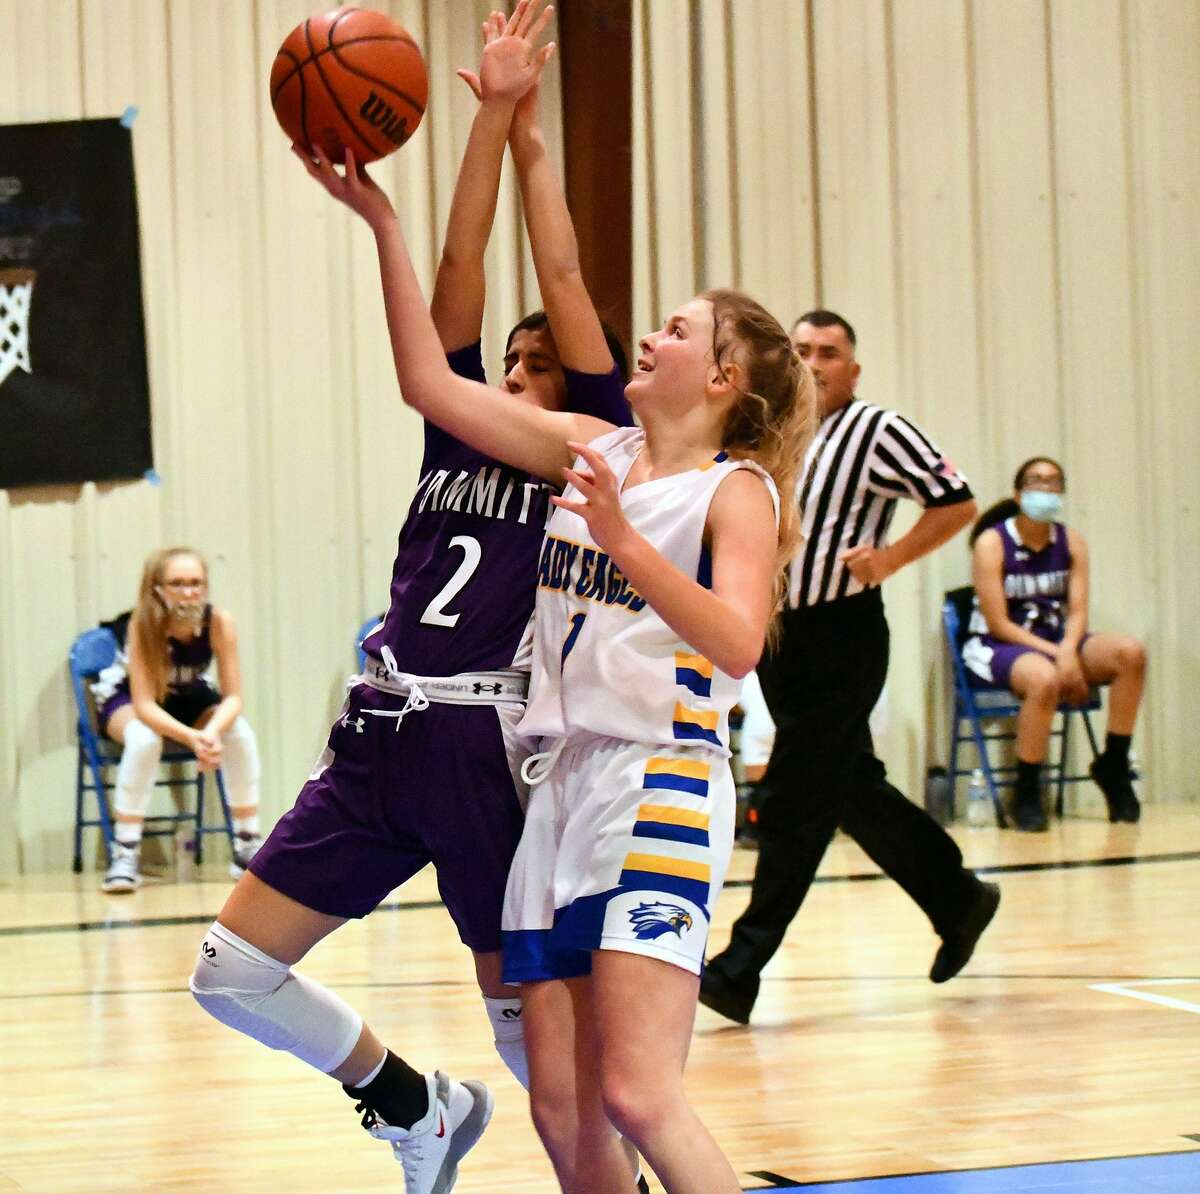 Plainview Christian Academy's basketball teams picked up a doubleheader sweep on Dec. 4, 2020 at PCA. The girls defeated Dimmitt JV 44-25 and the boys knocked off Amarillo Accelerate 63-51.